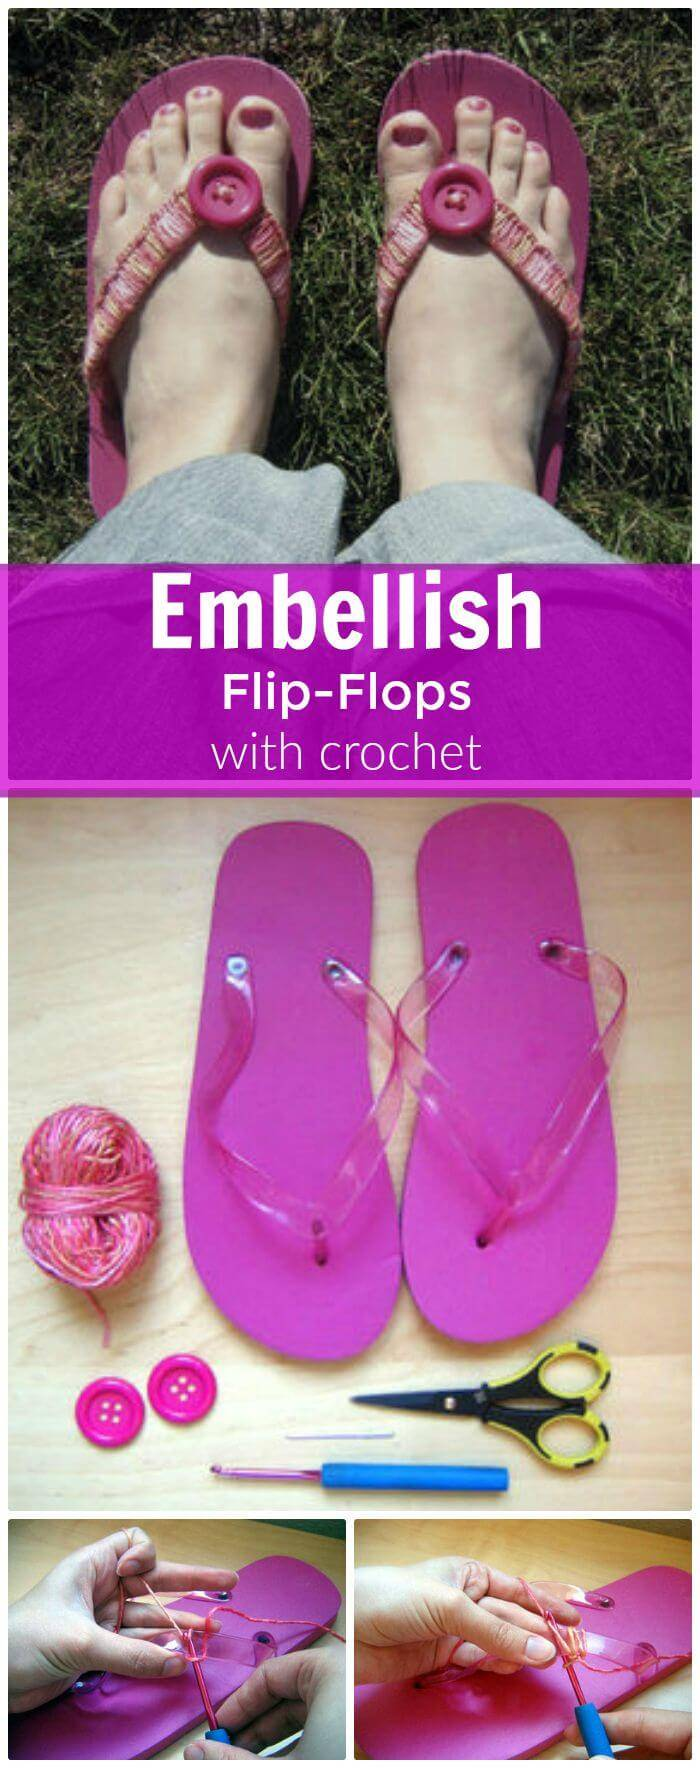 DIY Embellish Flip-Flops With Crochet, crochet flip flop slippers with step-by-step instructions